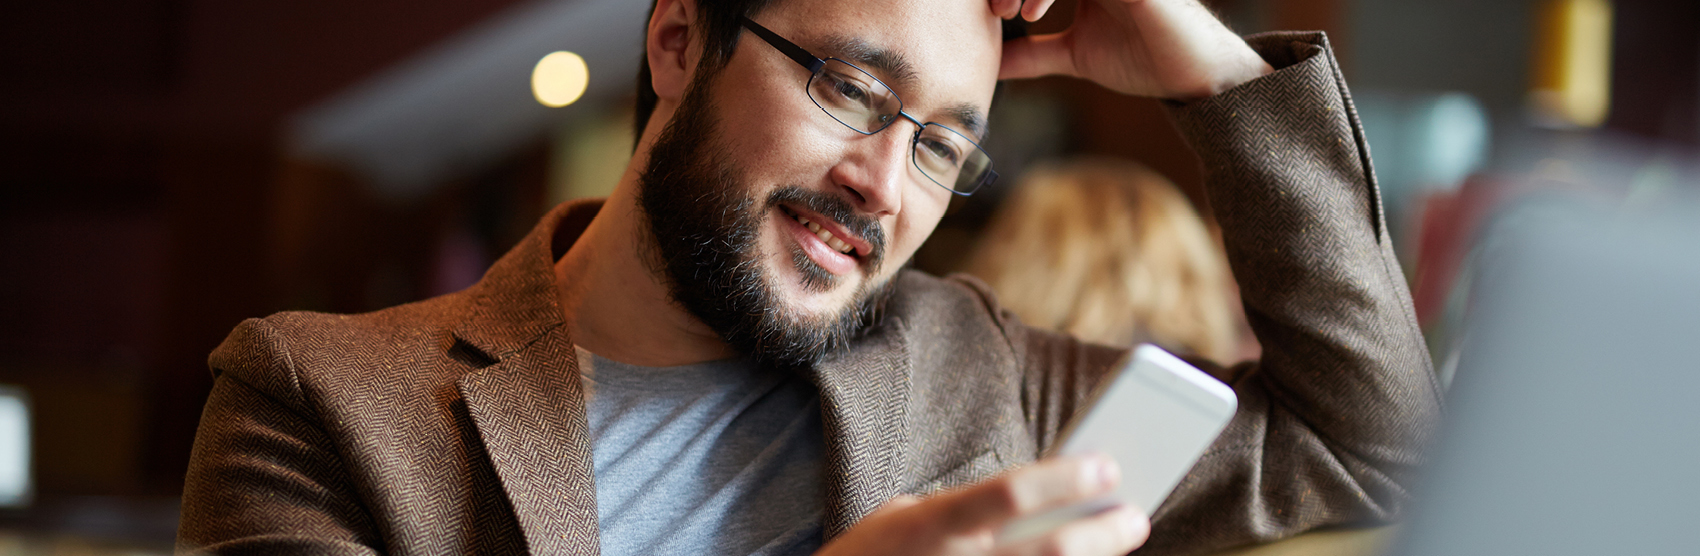 Man with beard looking at mobile device